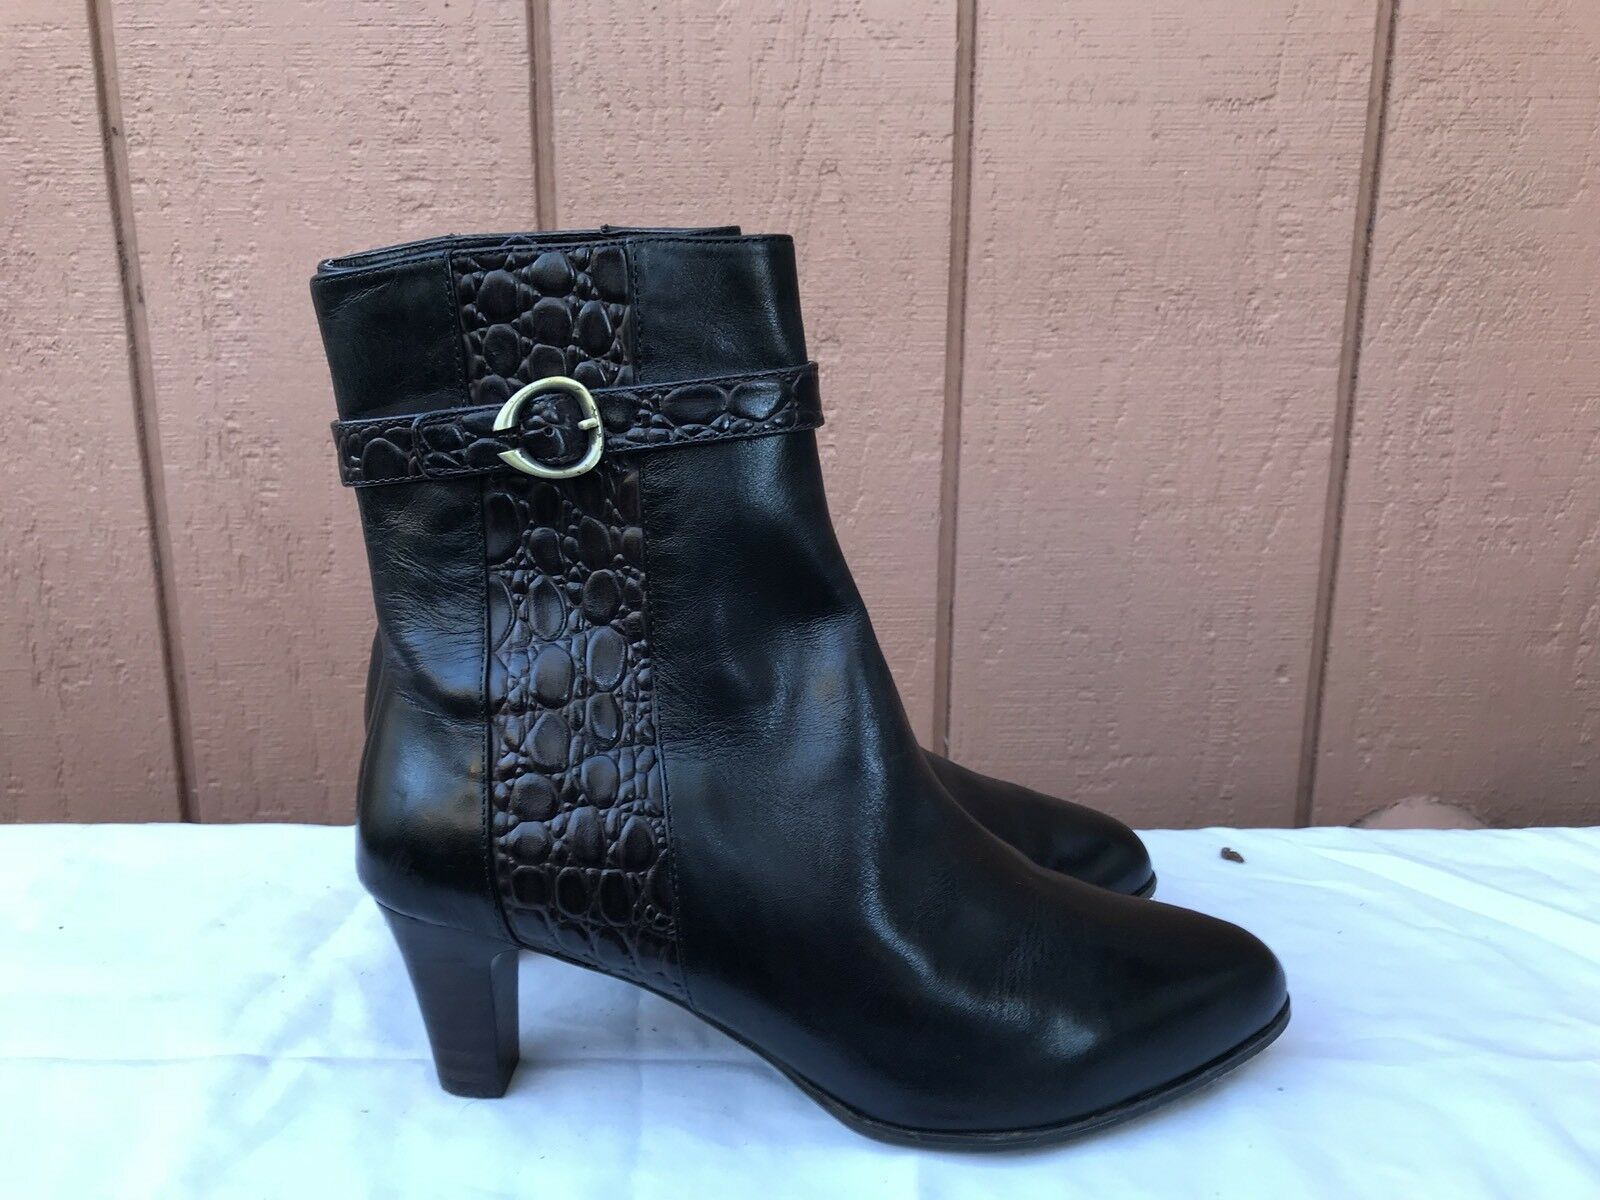 EUC Sudini Women Brown Leather Heels Mid Calf Boots Zip US shoes Size 9.5W